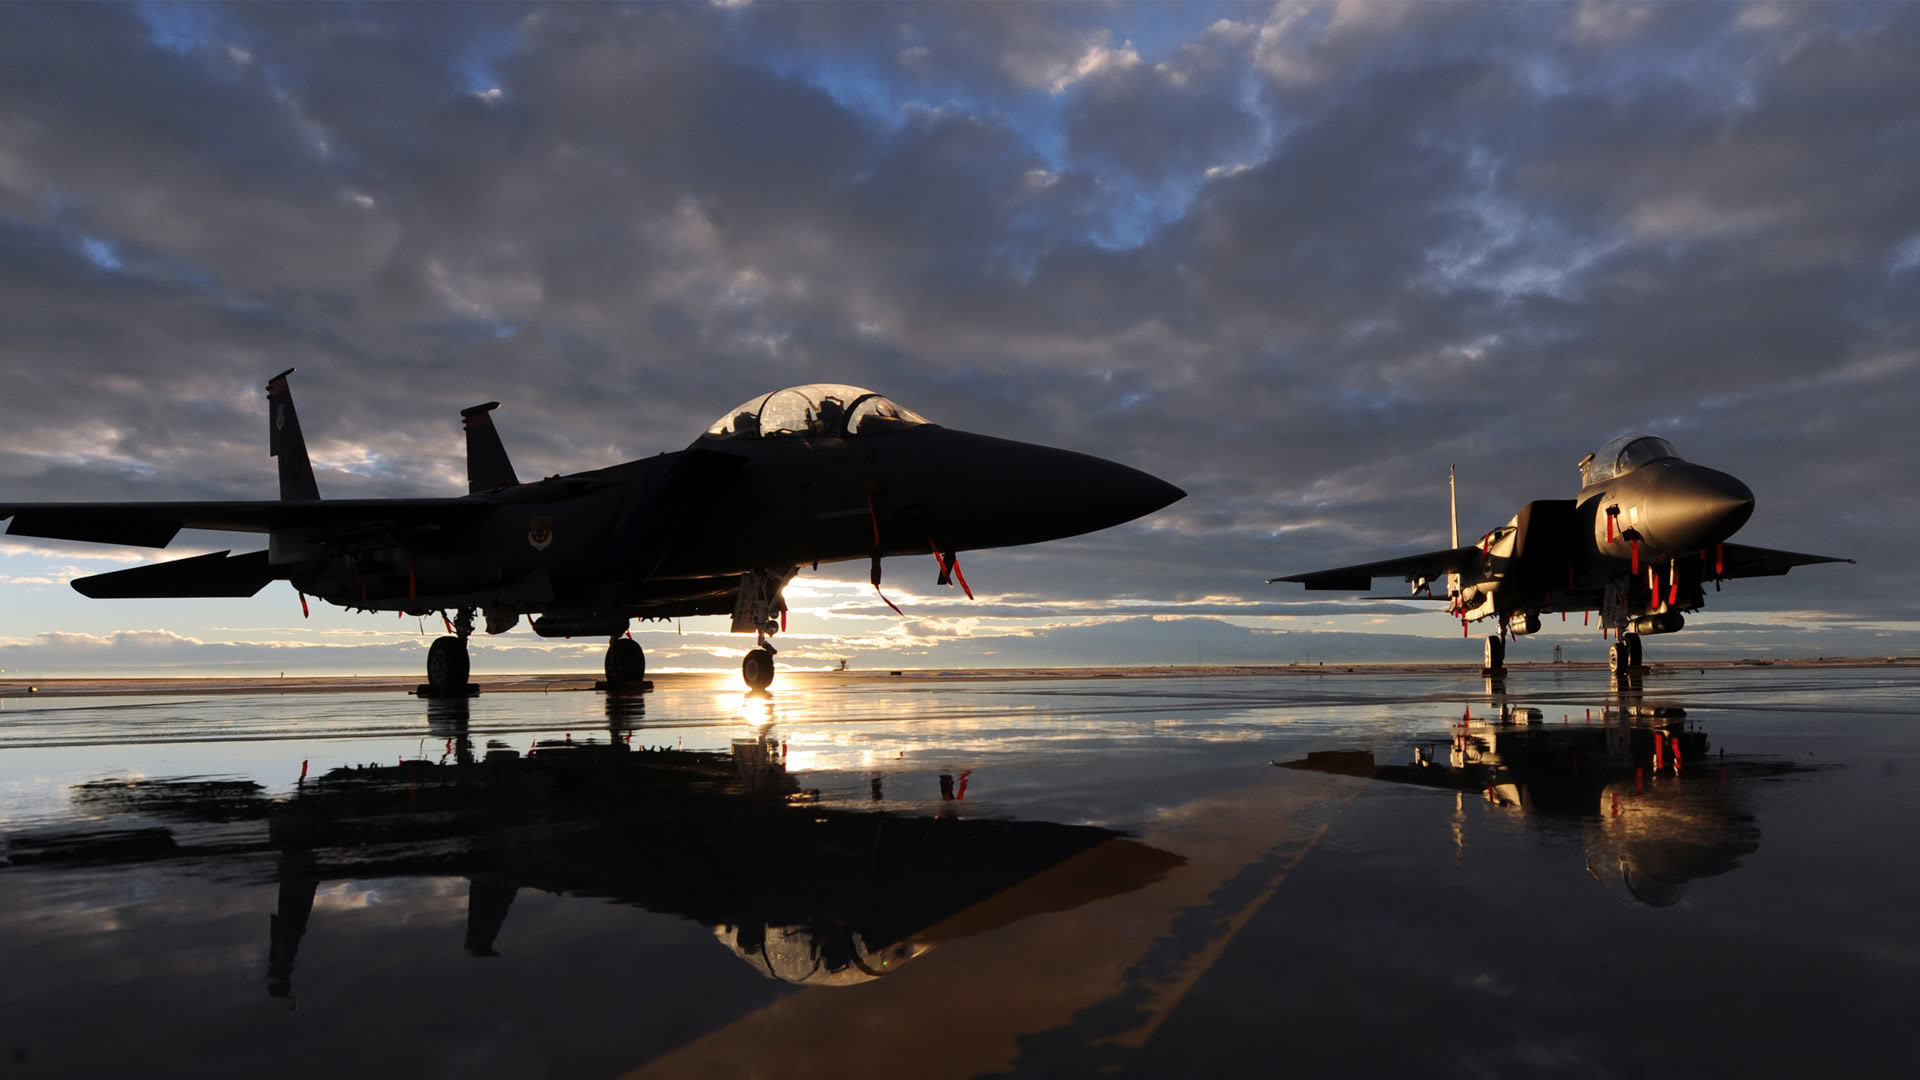 329 best Air images on Pinterest   Military aircraft, Planes and Air force